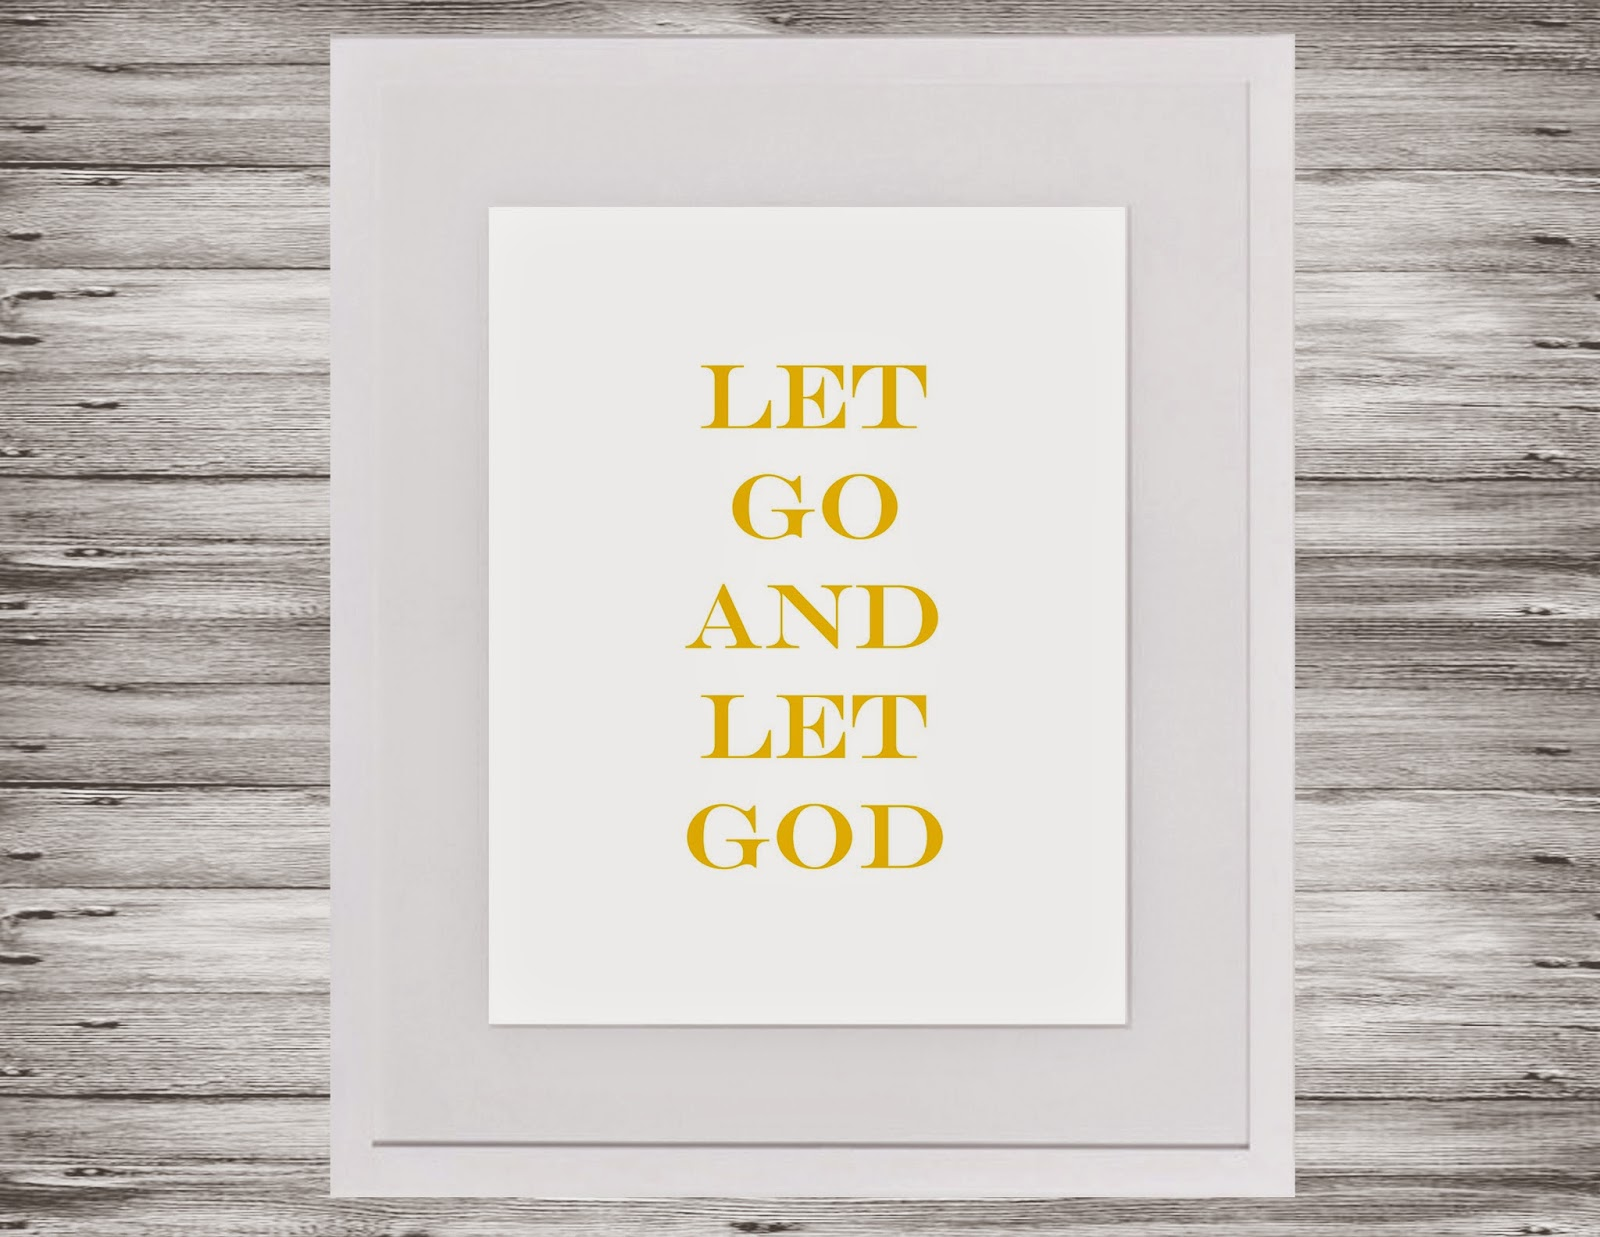 https://www.etsy.com/listing/204836047/printable-art-wall-art-home-decor-let-go?ref=shop_home_active_13